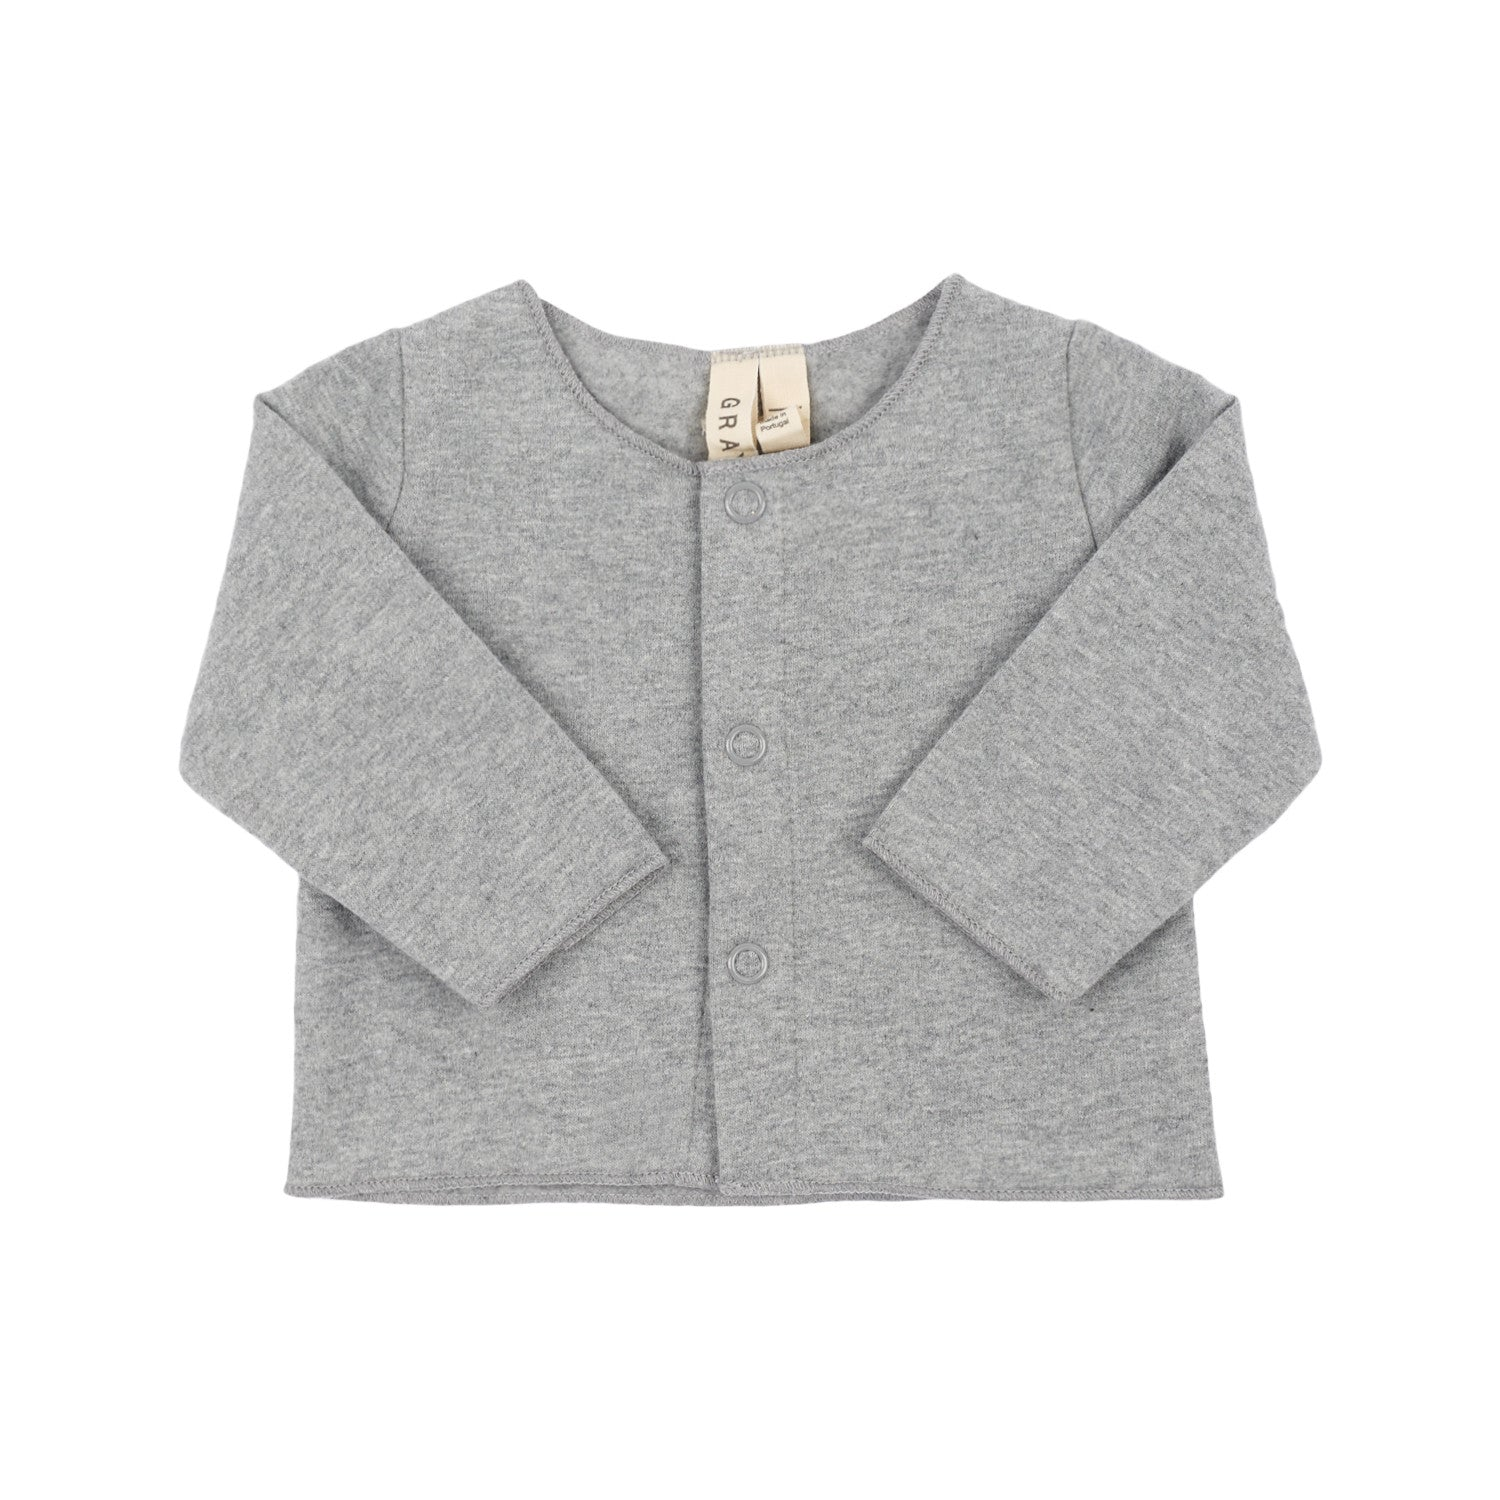 Gray Label Grey Melange Baby Cardigan